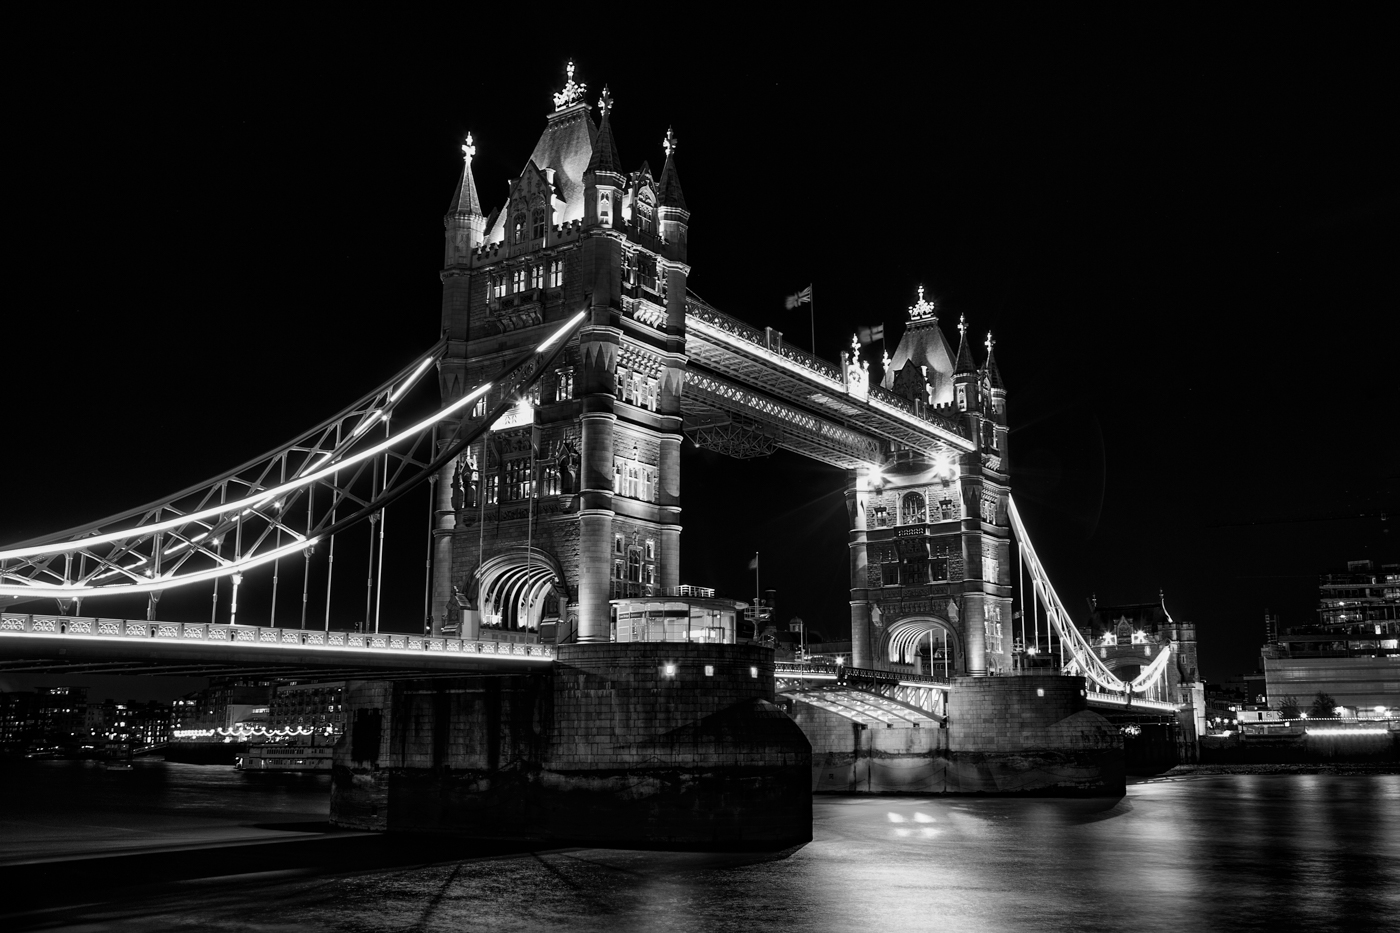 TOWER BRIDGE by Chris Reynolds